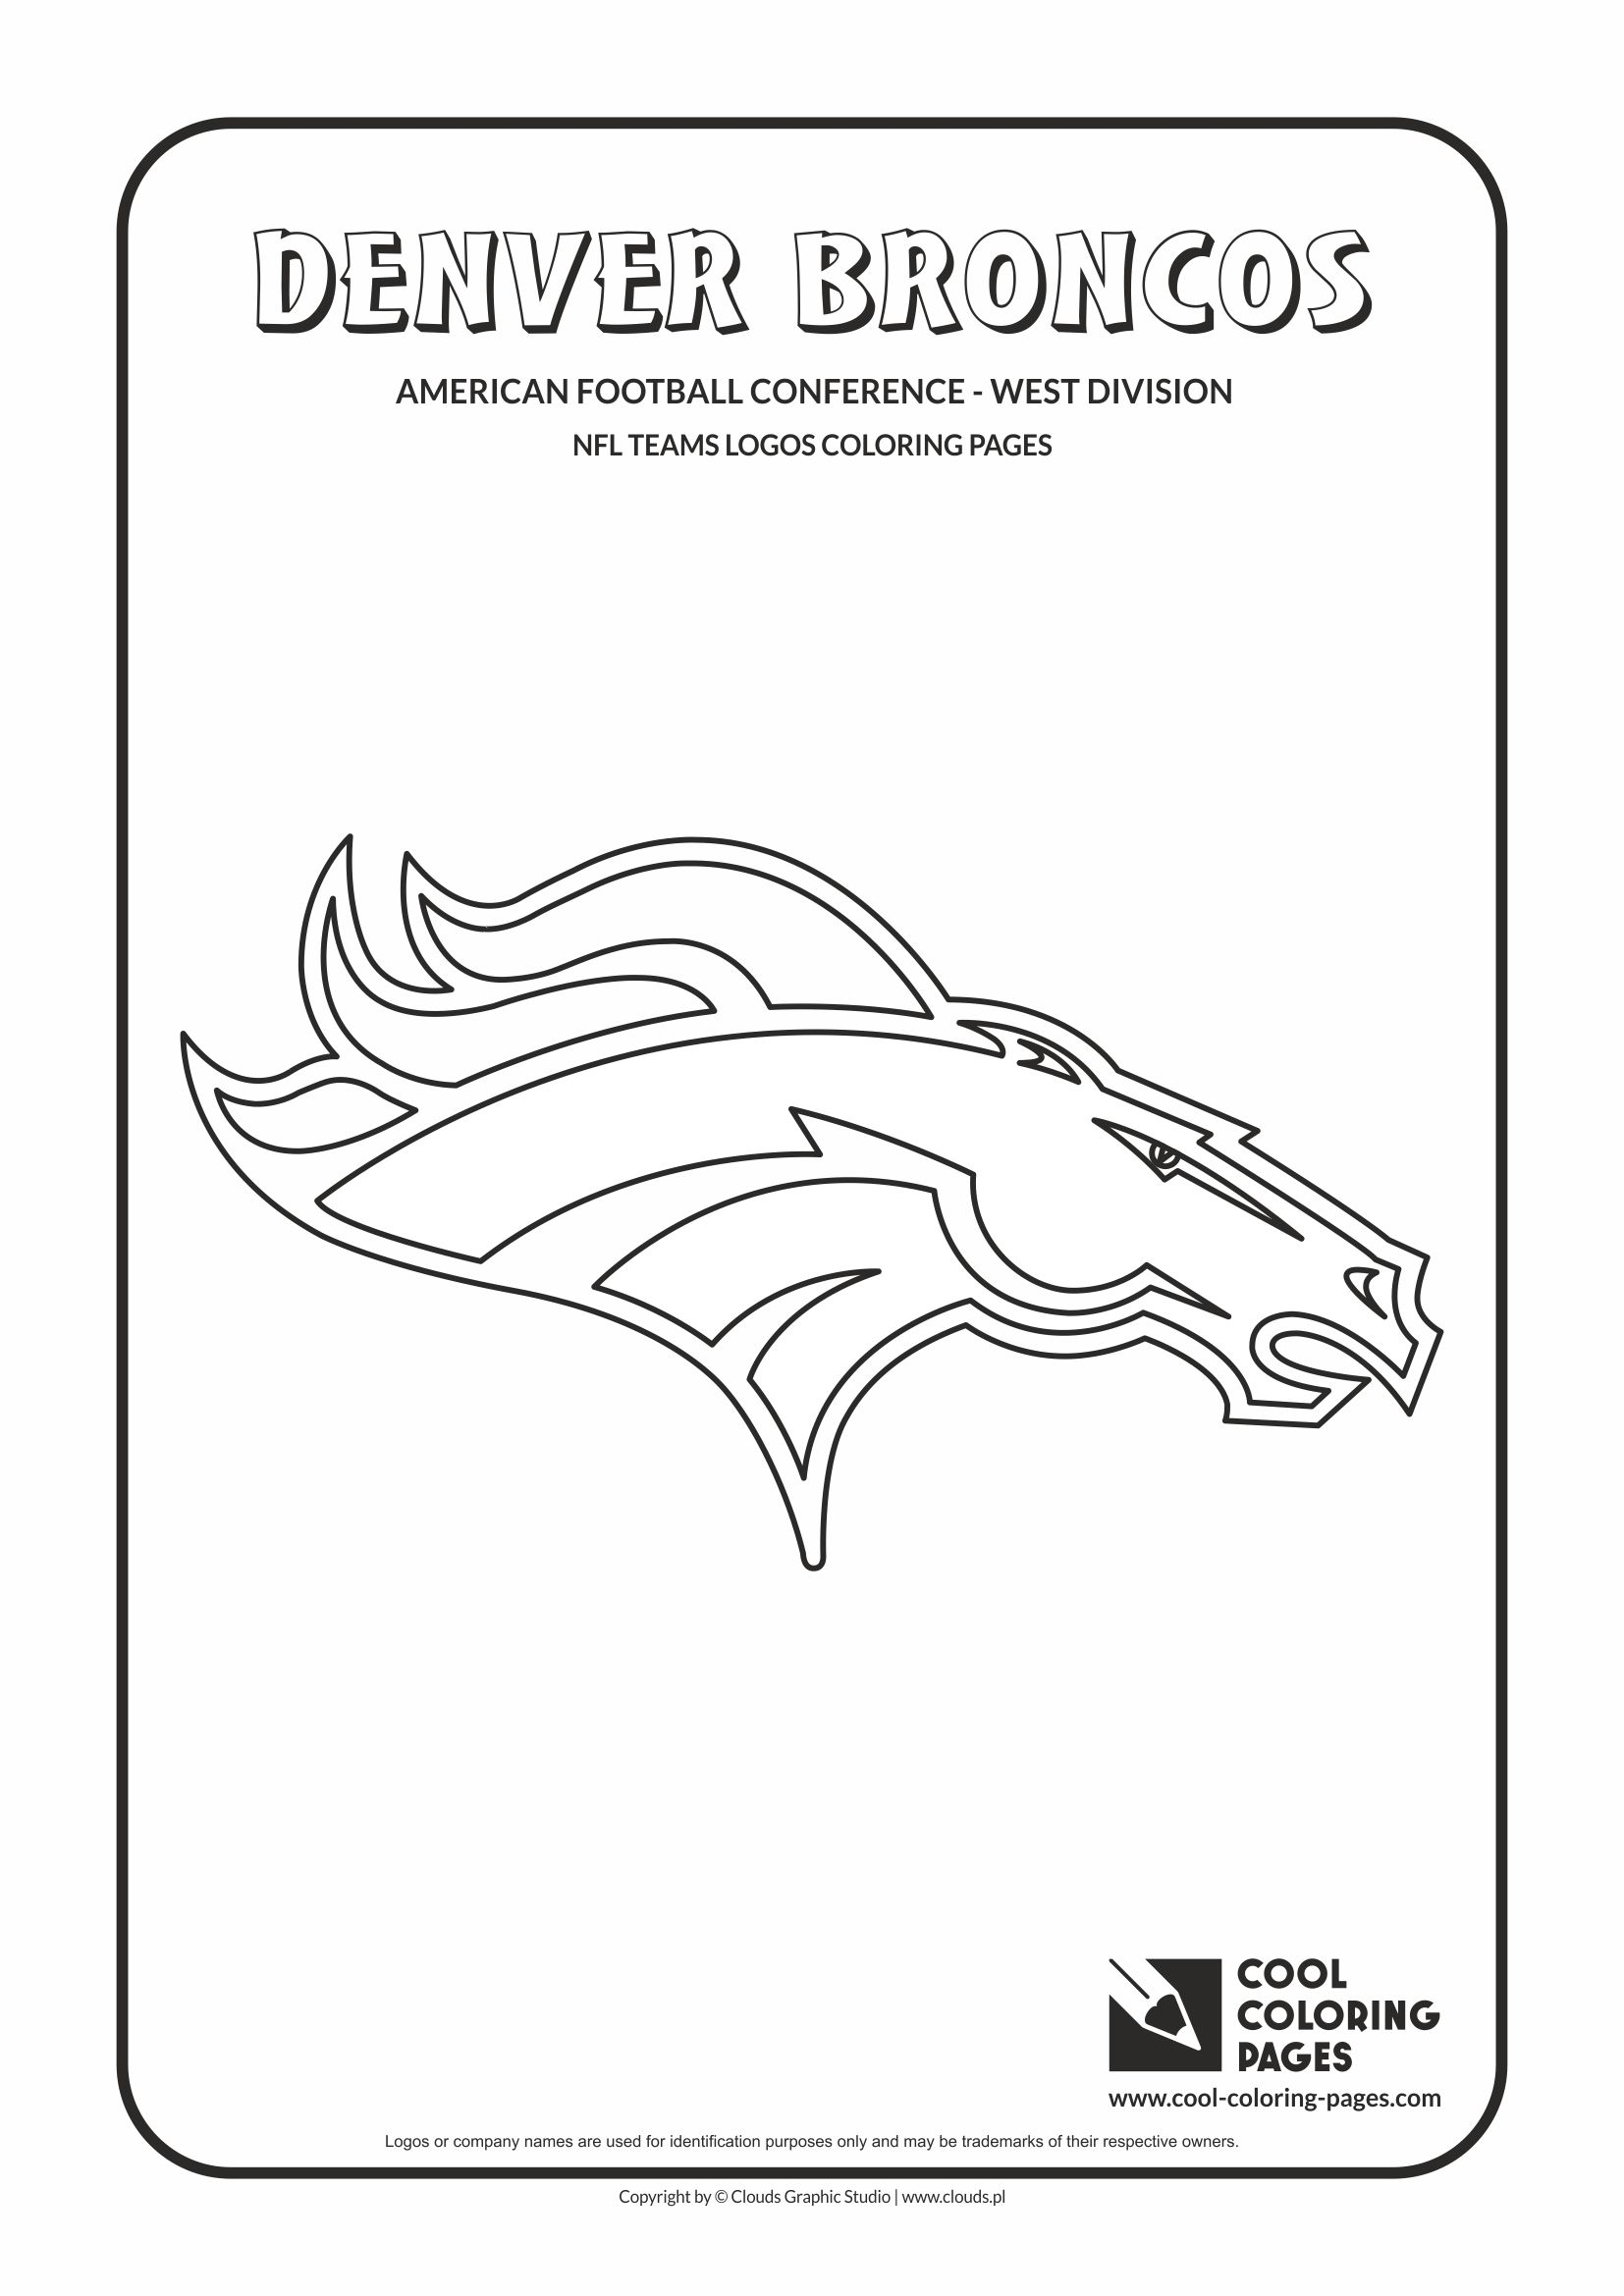 Cool Coloring Pages - NFL American Football Clubs Logos - American Football Conference - West Division / Denver Broncos logo / Coloring page with Denver Broncos logo